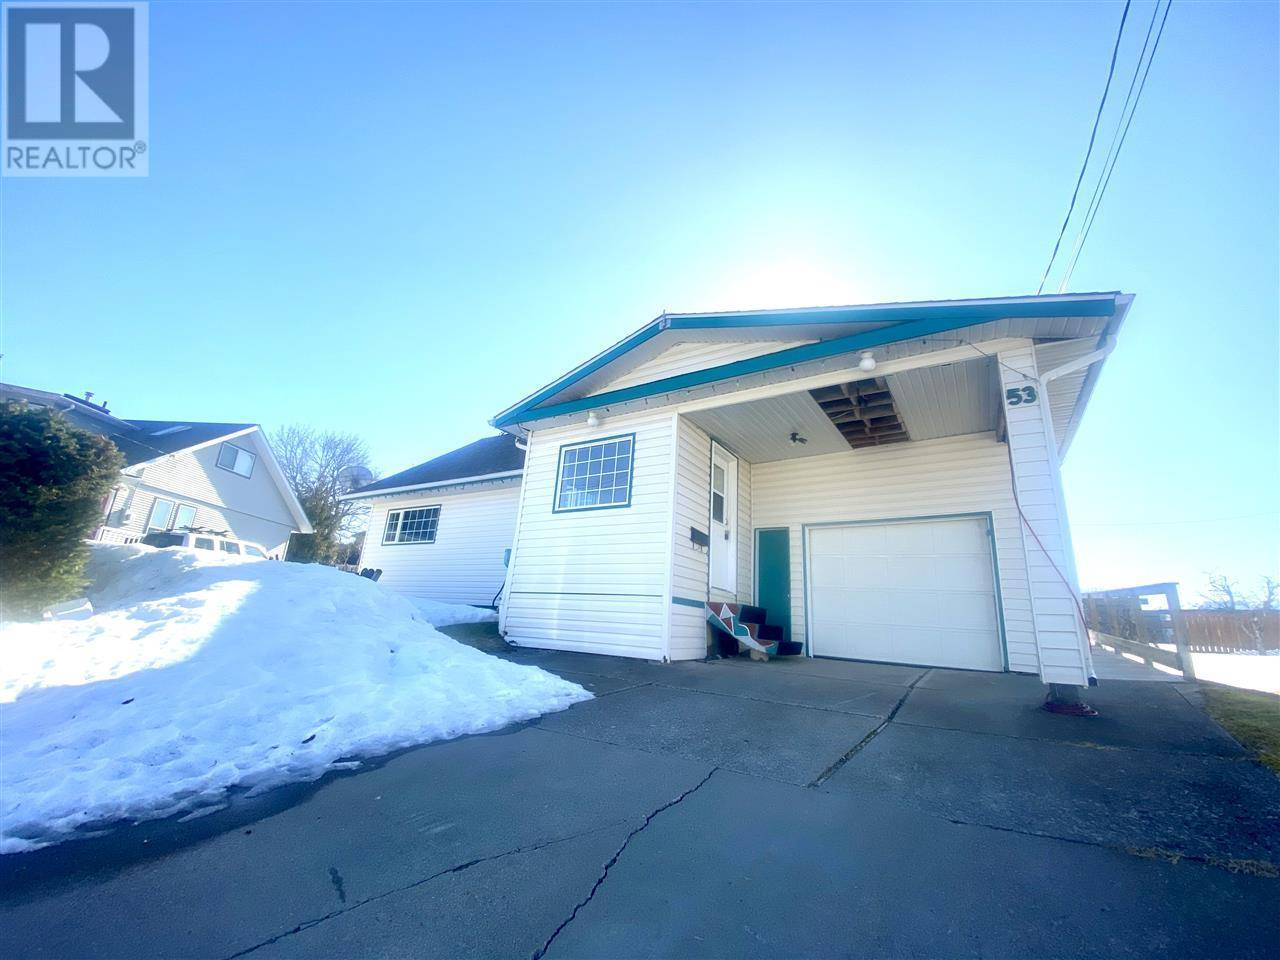 House for sale at 53 Wren St Kitimat British Columbia - MLS: R2446174